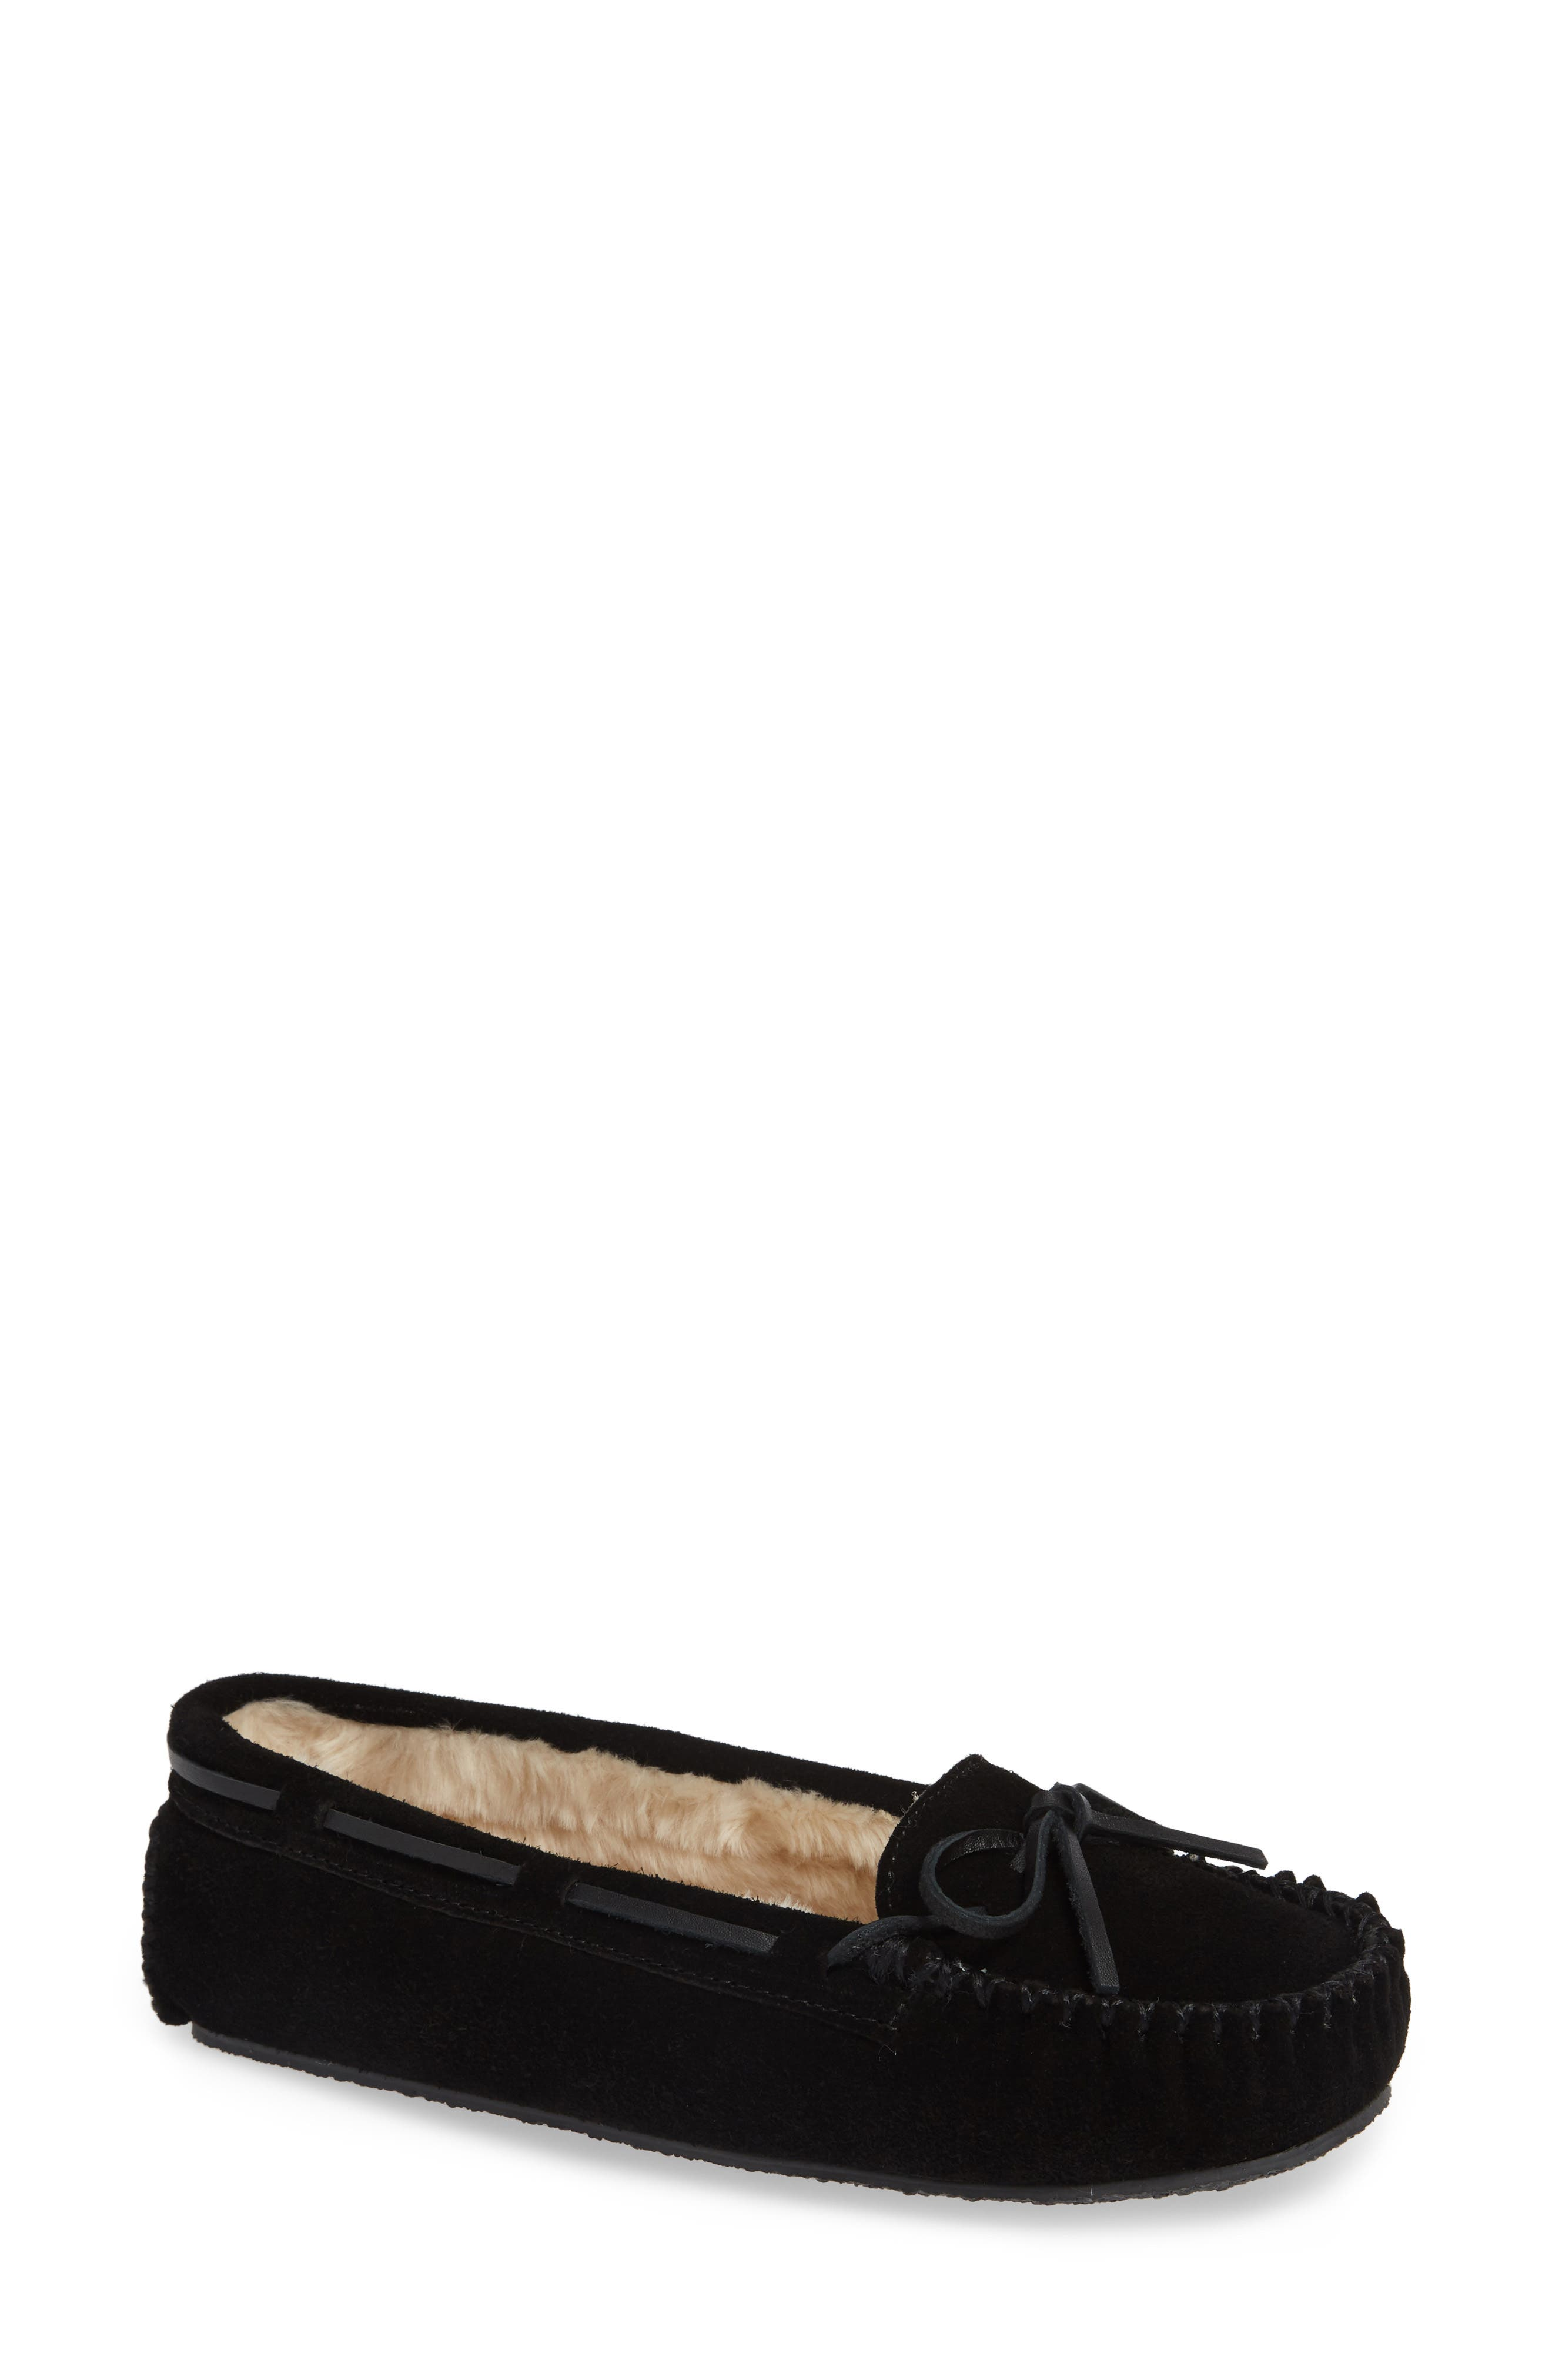 MINNETONKA 'Cally' Slipper, Main, color, BLACK SUEDE